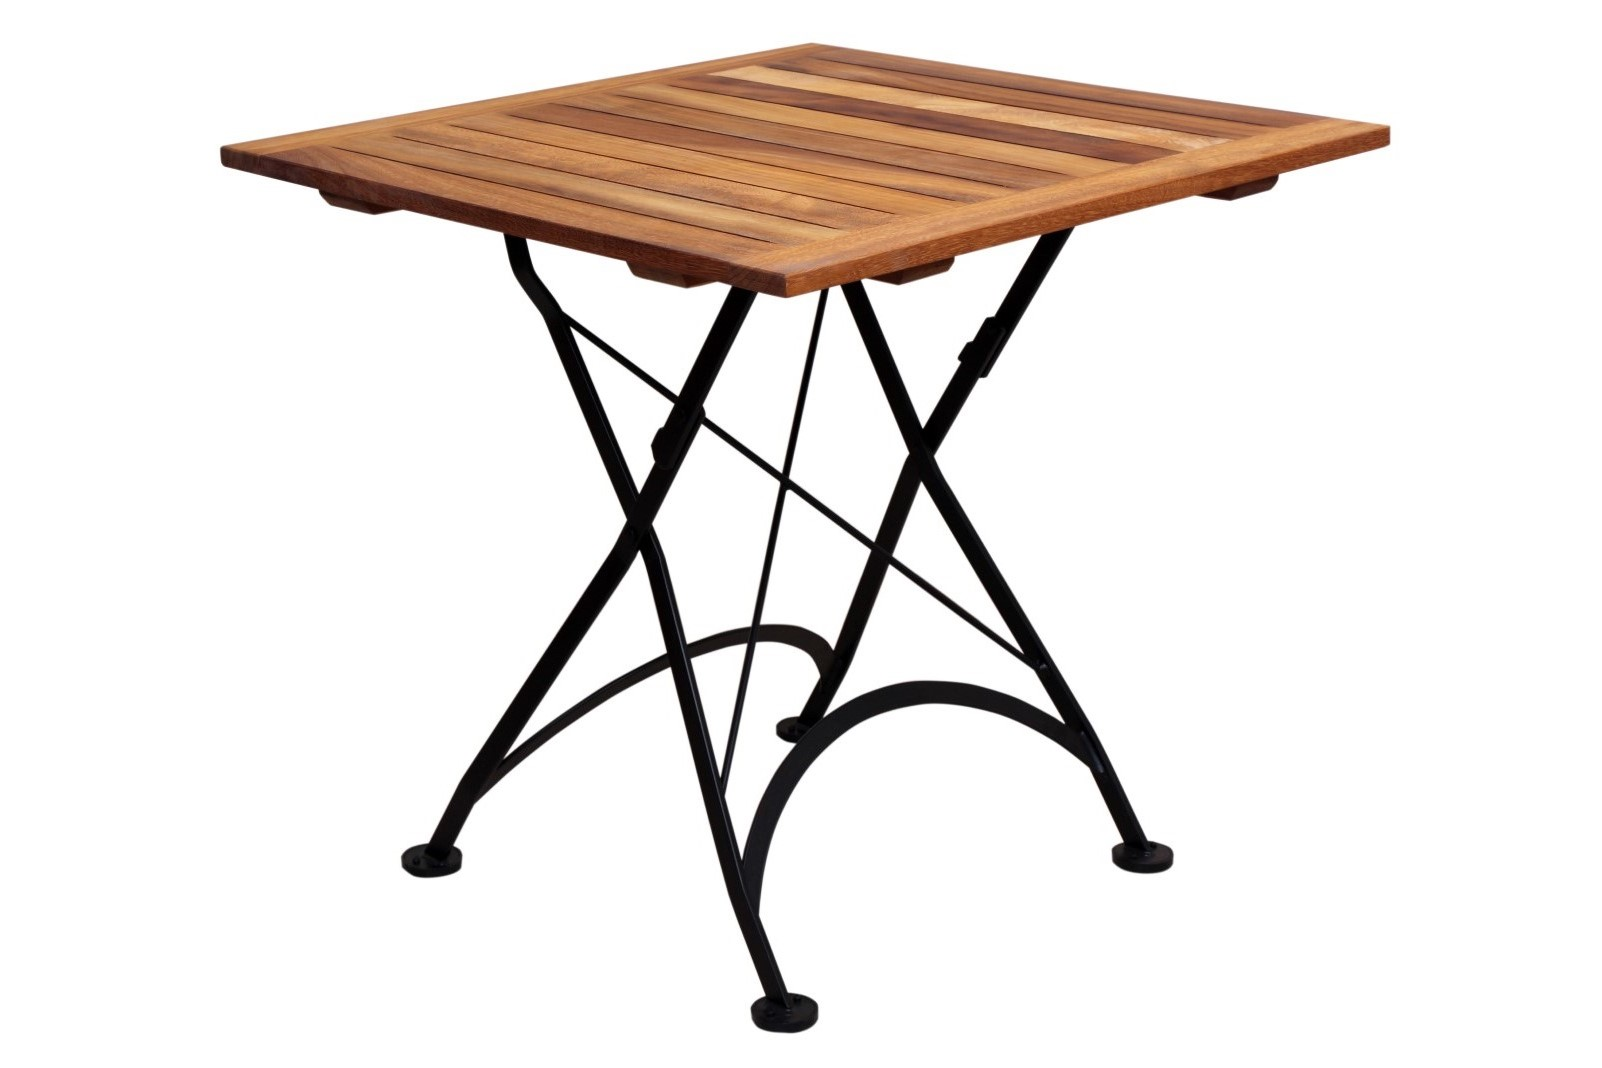 4114T-BK African Teak dining table